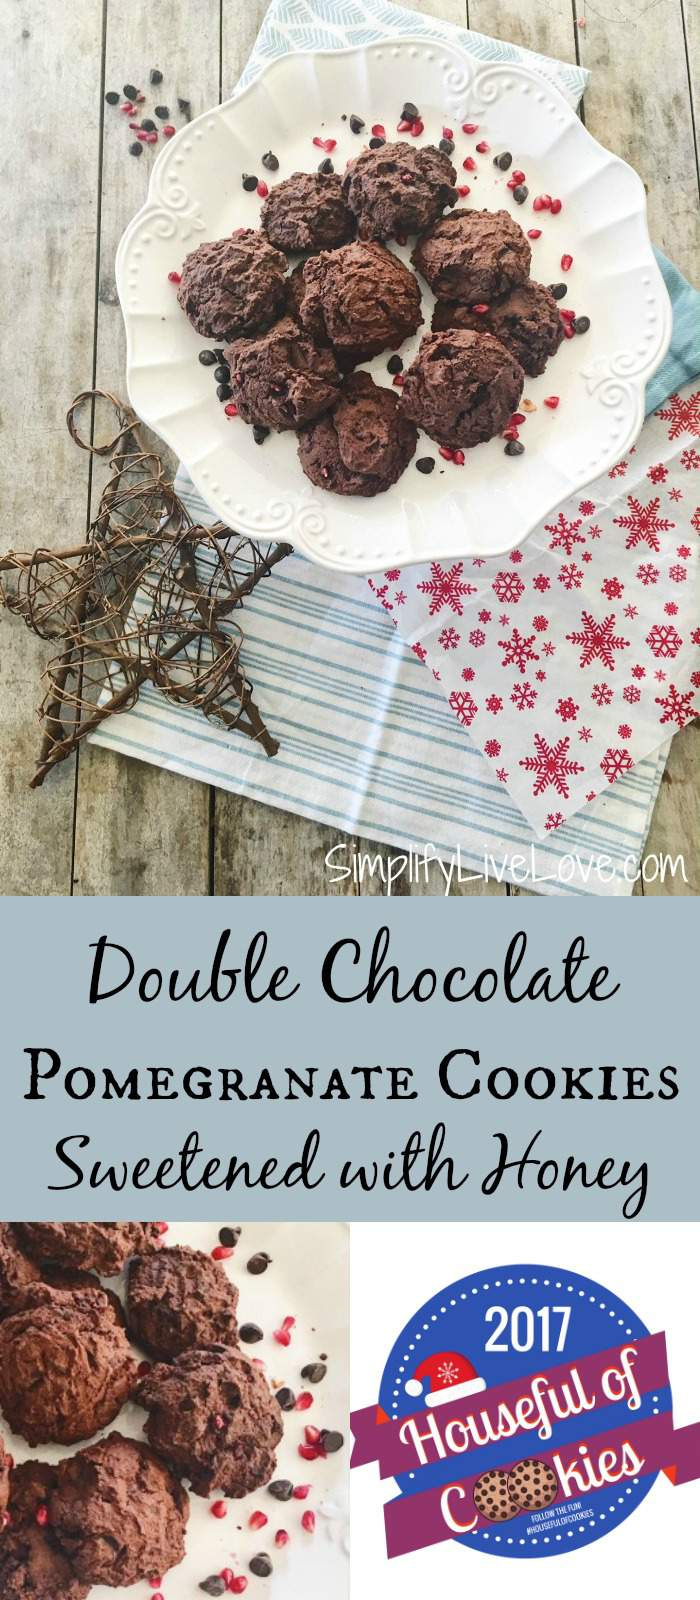 These double chocolate pomegranate cookies are sweetened with honey instead of sugar and are a rich, delicious treat! Learn how to make them here.